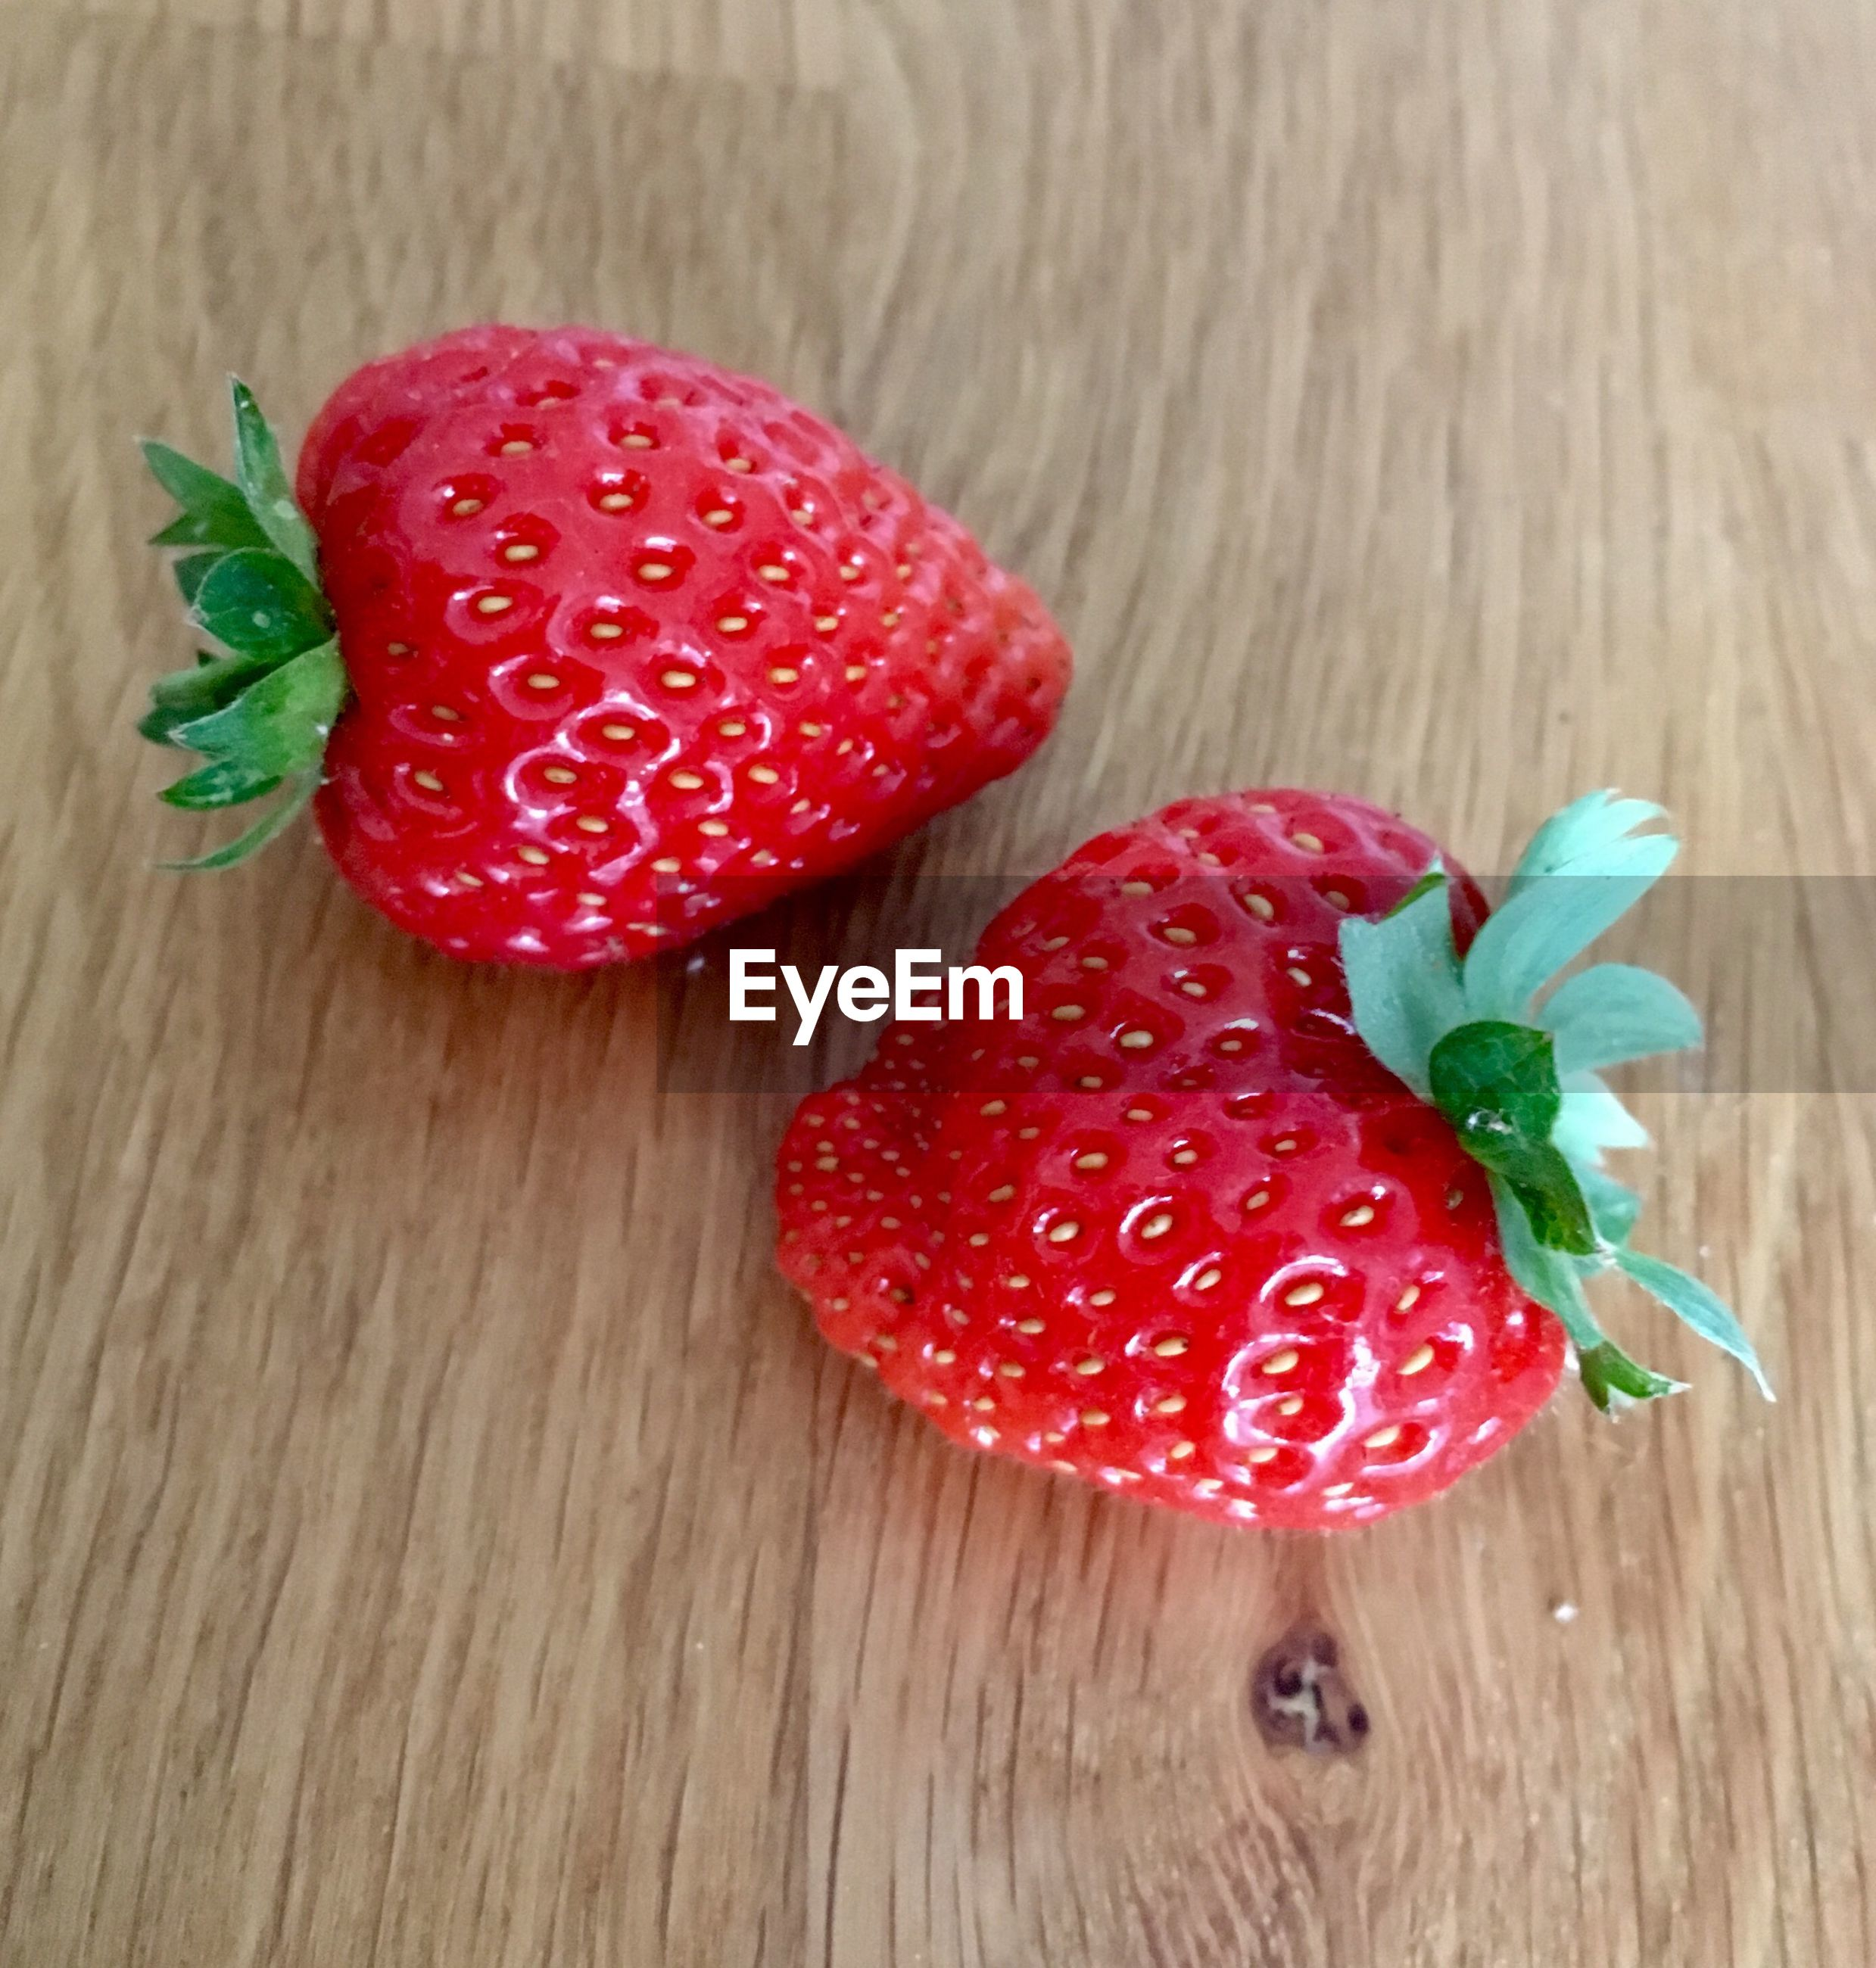 strawberry, fruit, wood - material, red, close-up, wood grain, freshness, no people, healthy eating, indoors, food